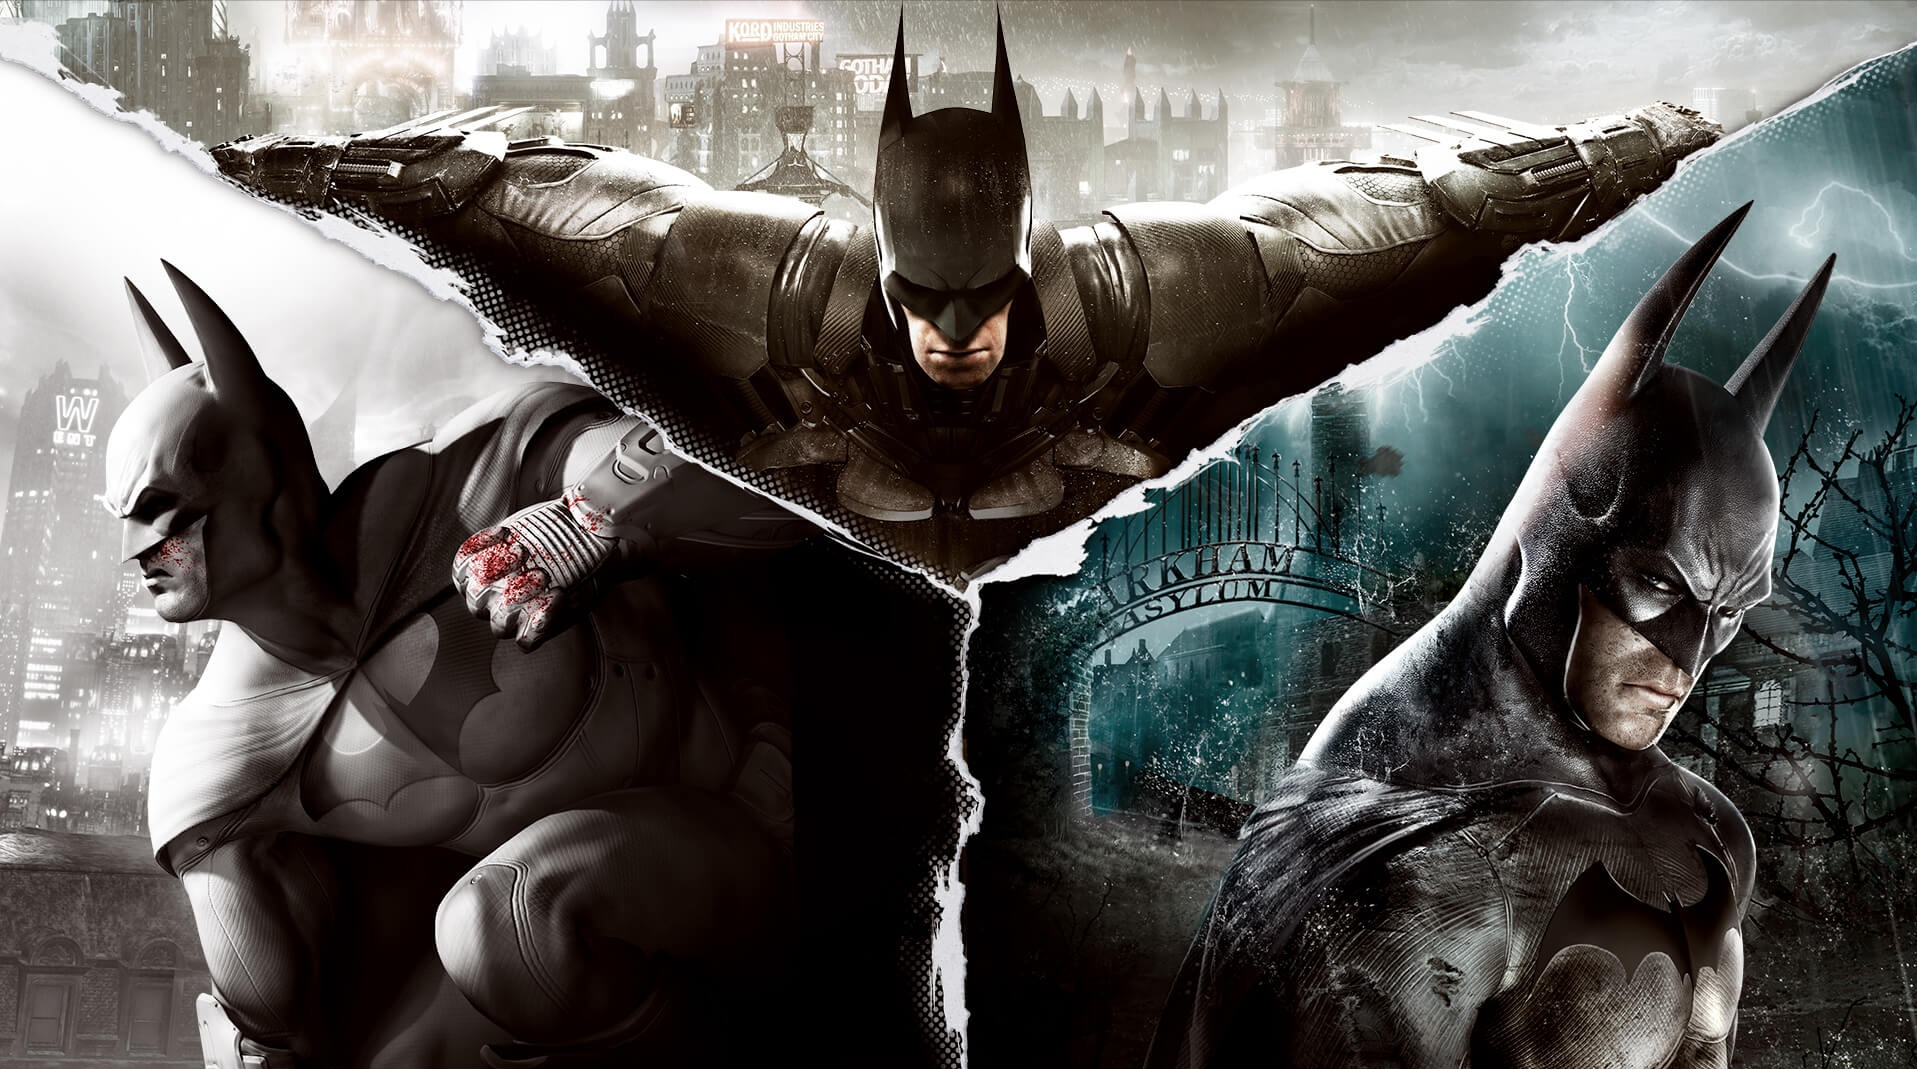 [Epic Games Store] Batman Arkham Collection + Lego Batman Trilogy (Free/-100%) Sept. 19 – 26